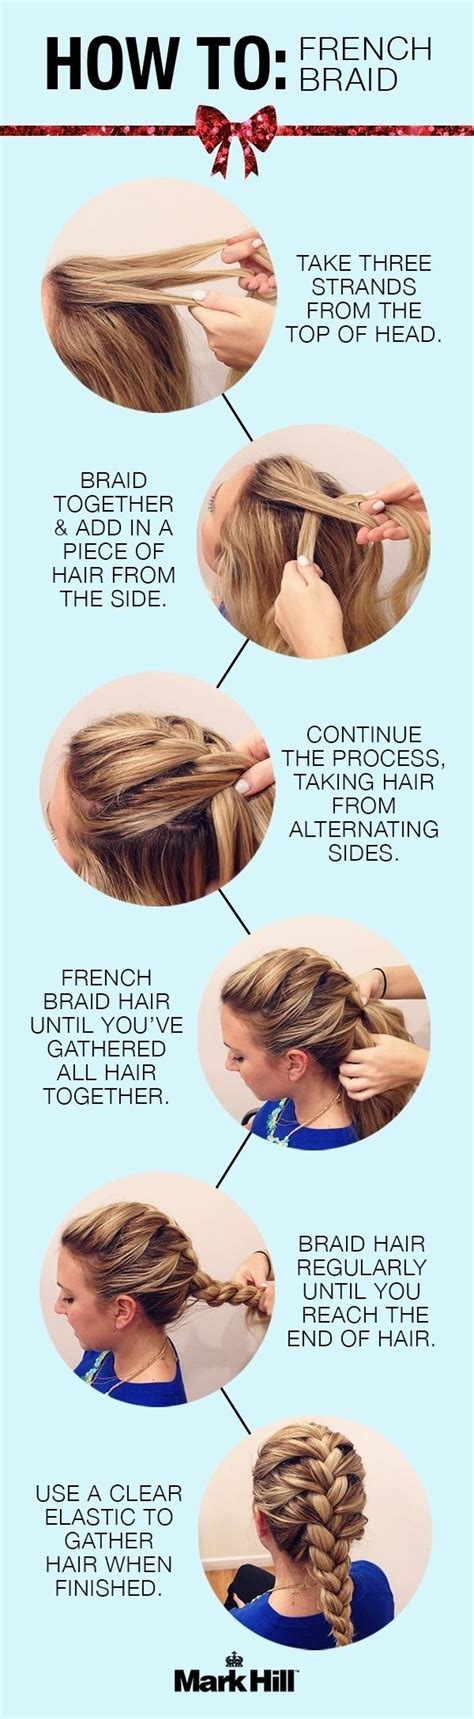 how to i plait my own side hair 10 french braids hairstyles tutorials everyday hair